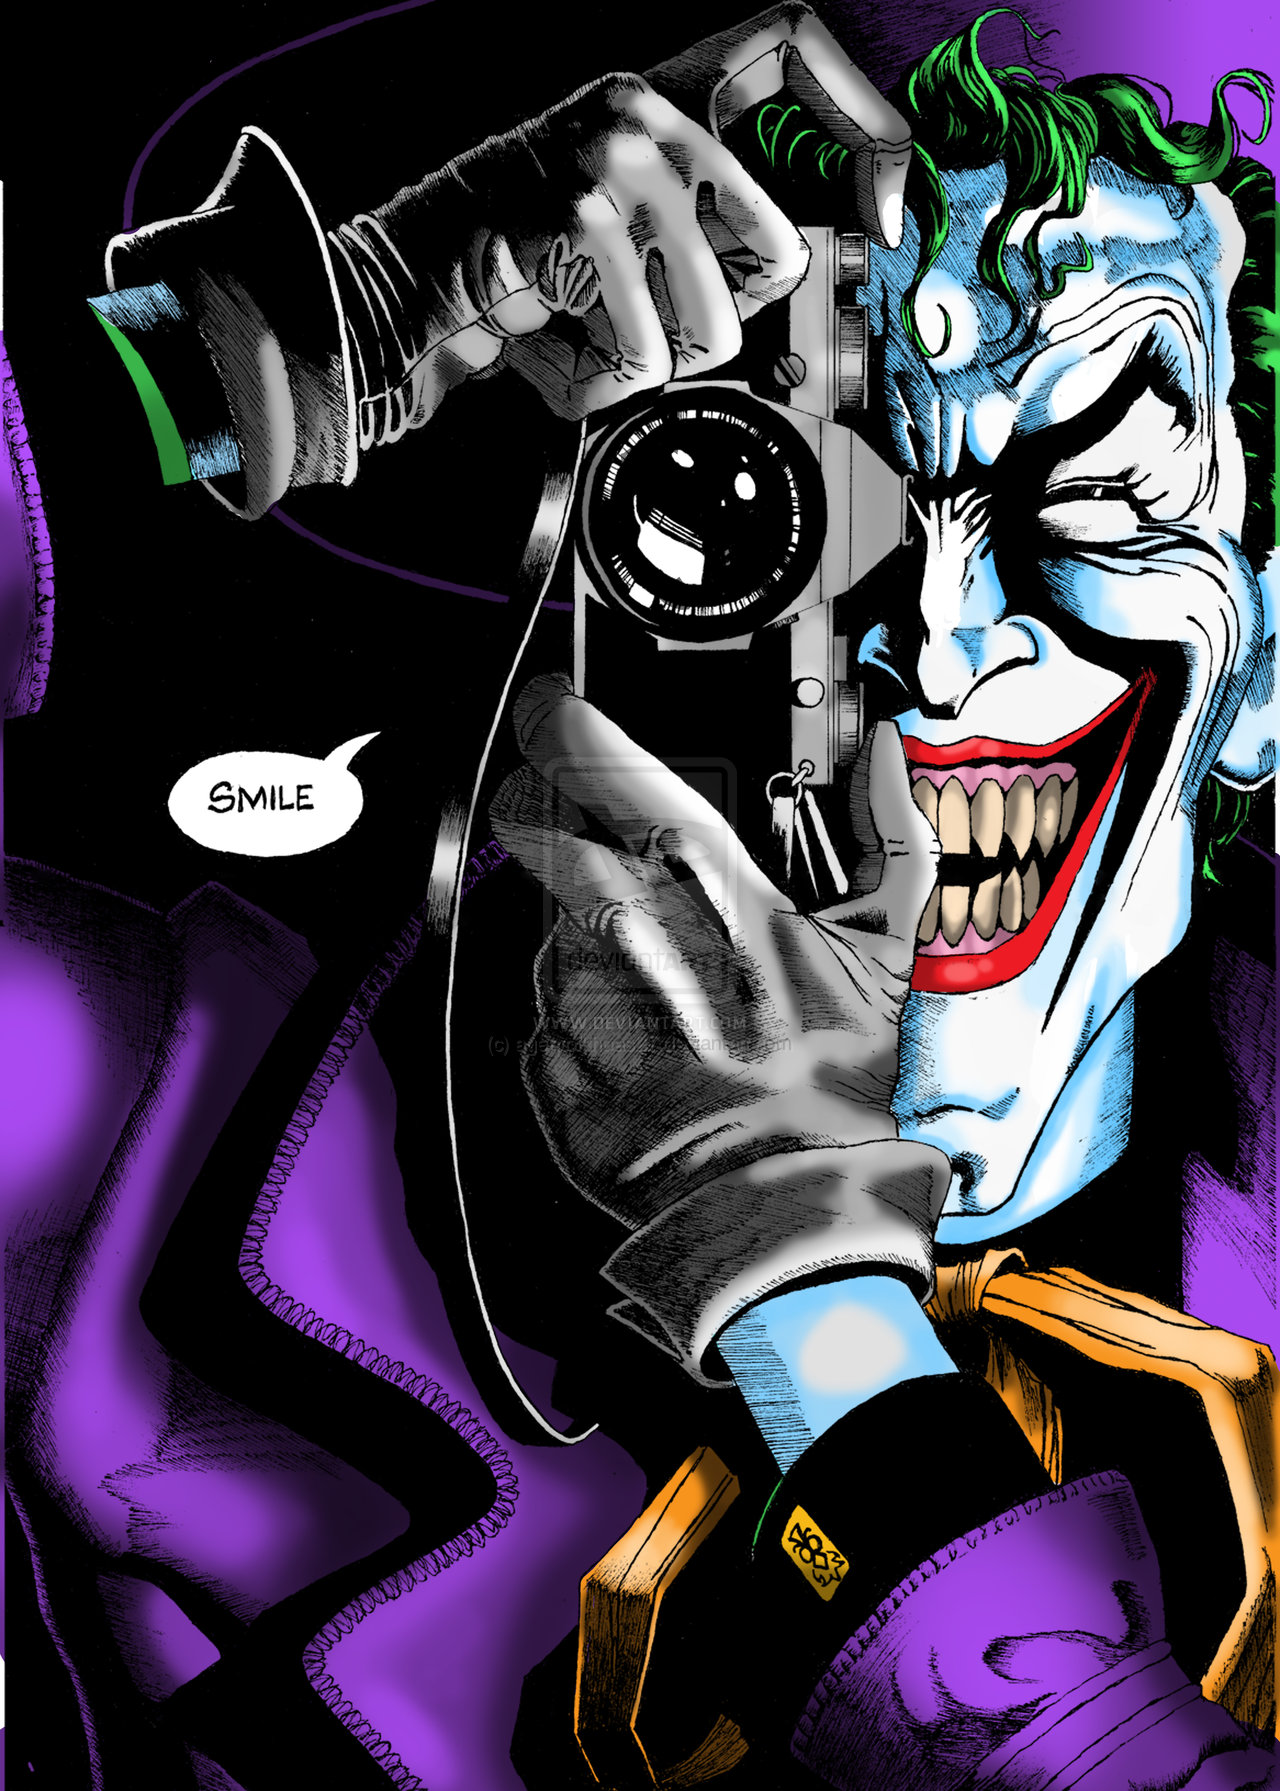 Killing Joke - The Unperverted Pantomime?